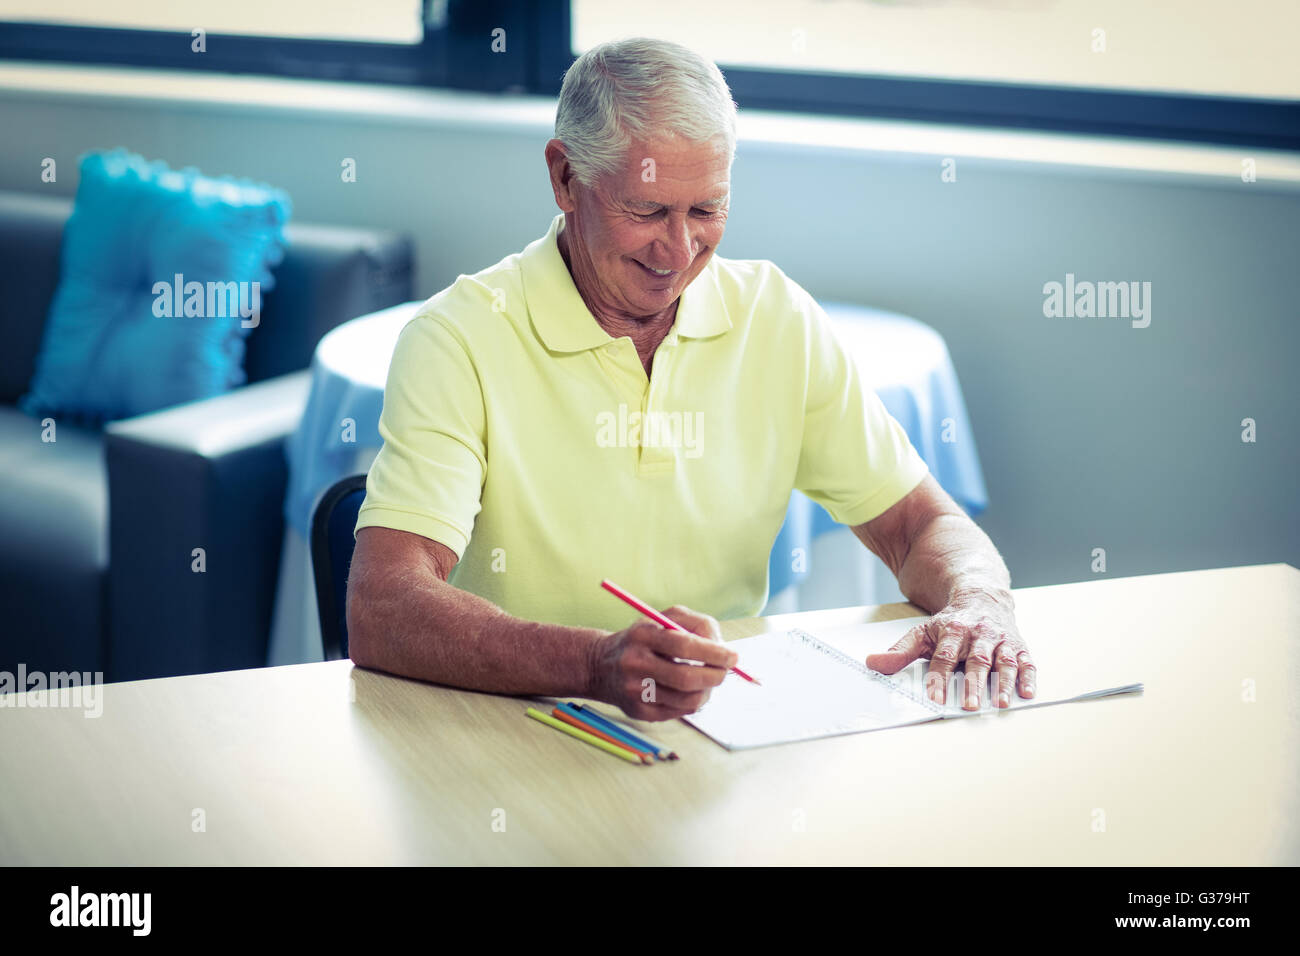 Senior man drawing with a colored pencil in drawing book - Stock Image